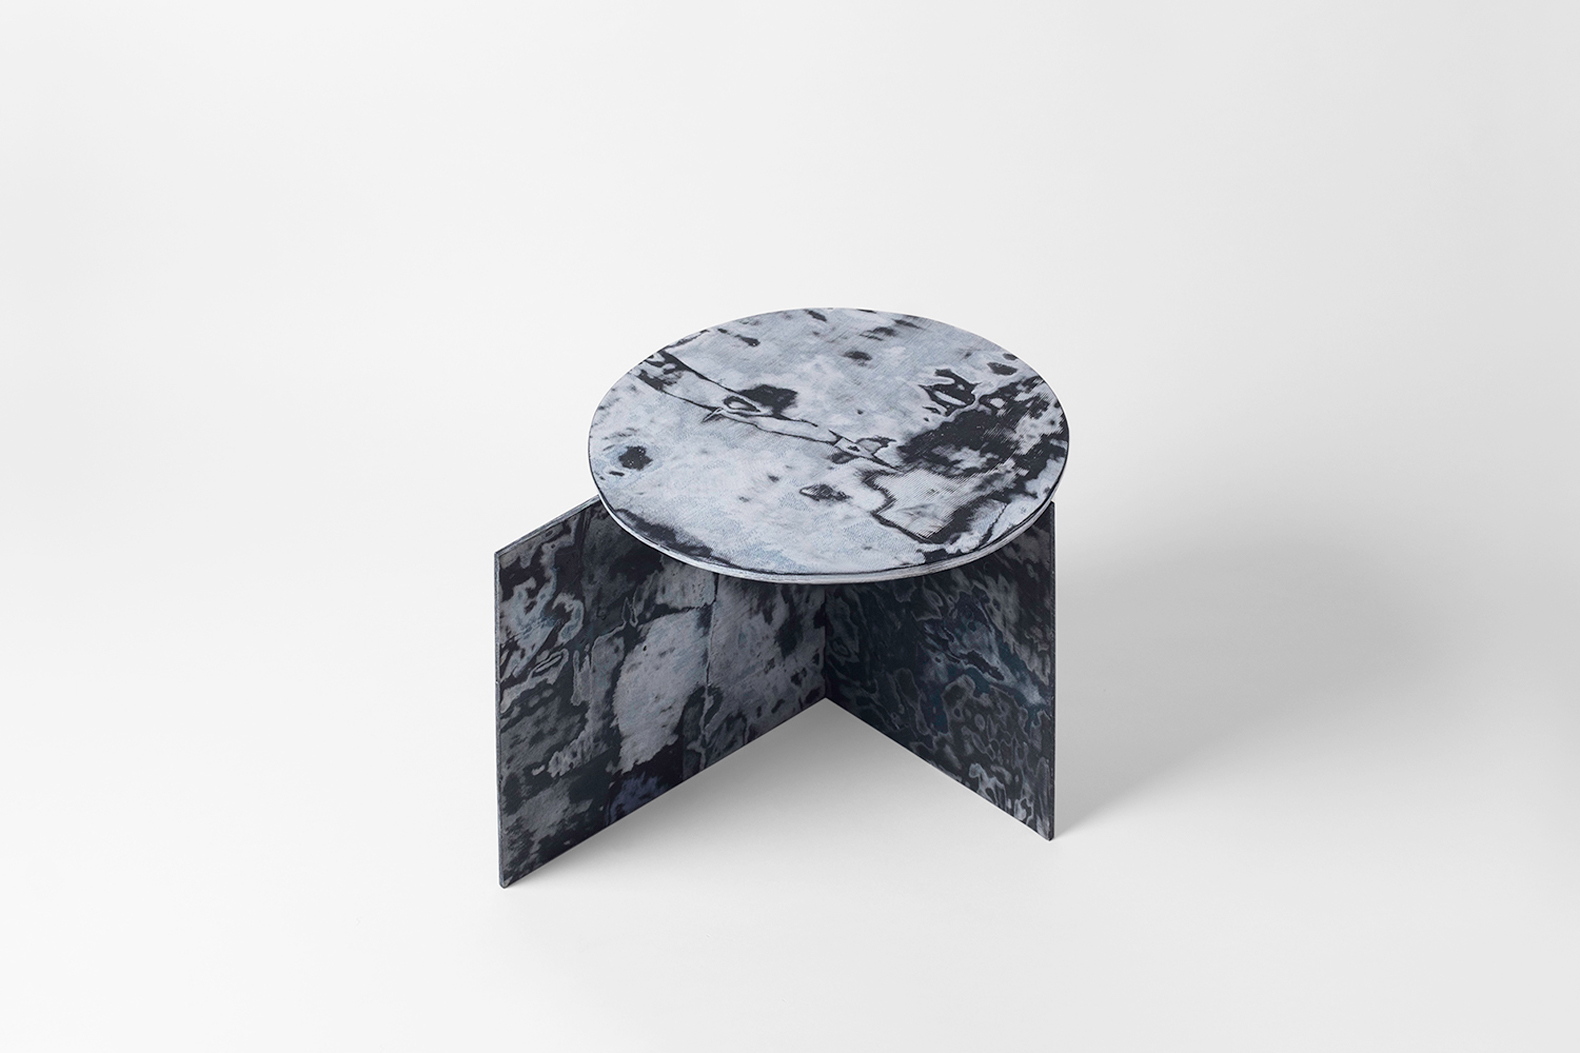 Designer Sophie Rowley creates marbled furniture from denim scraps